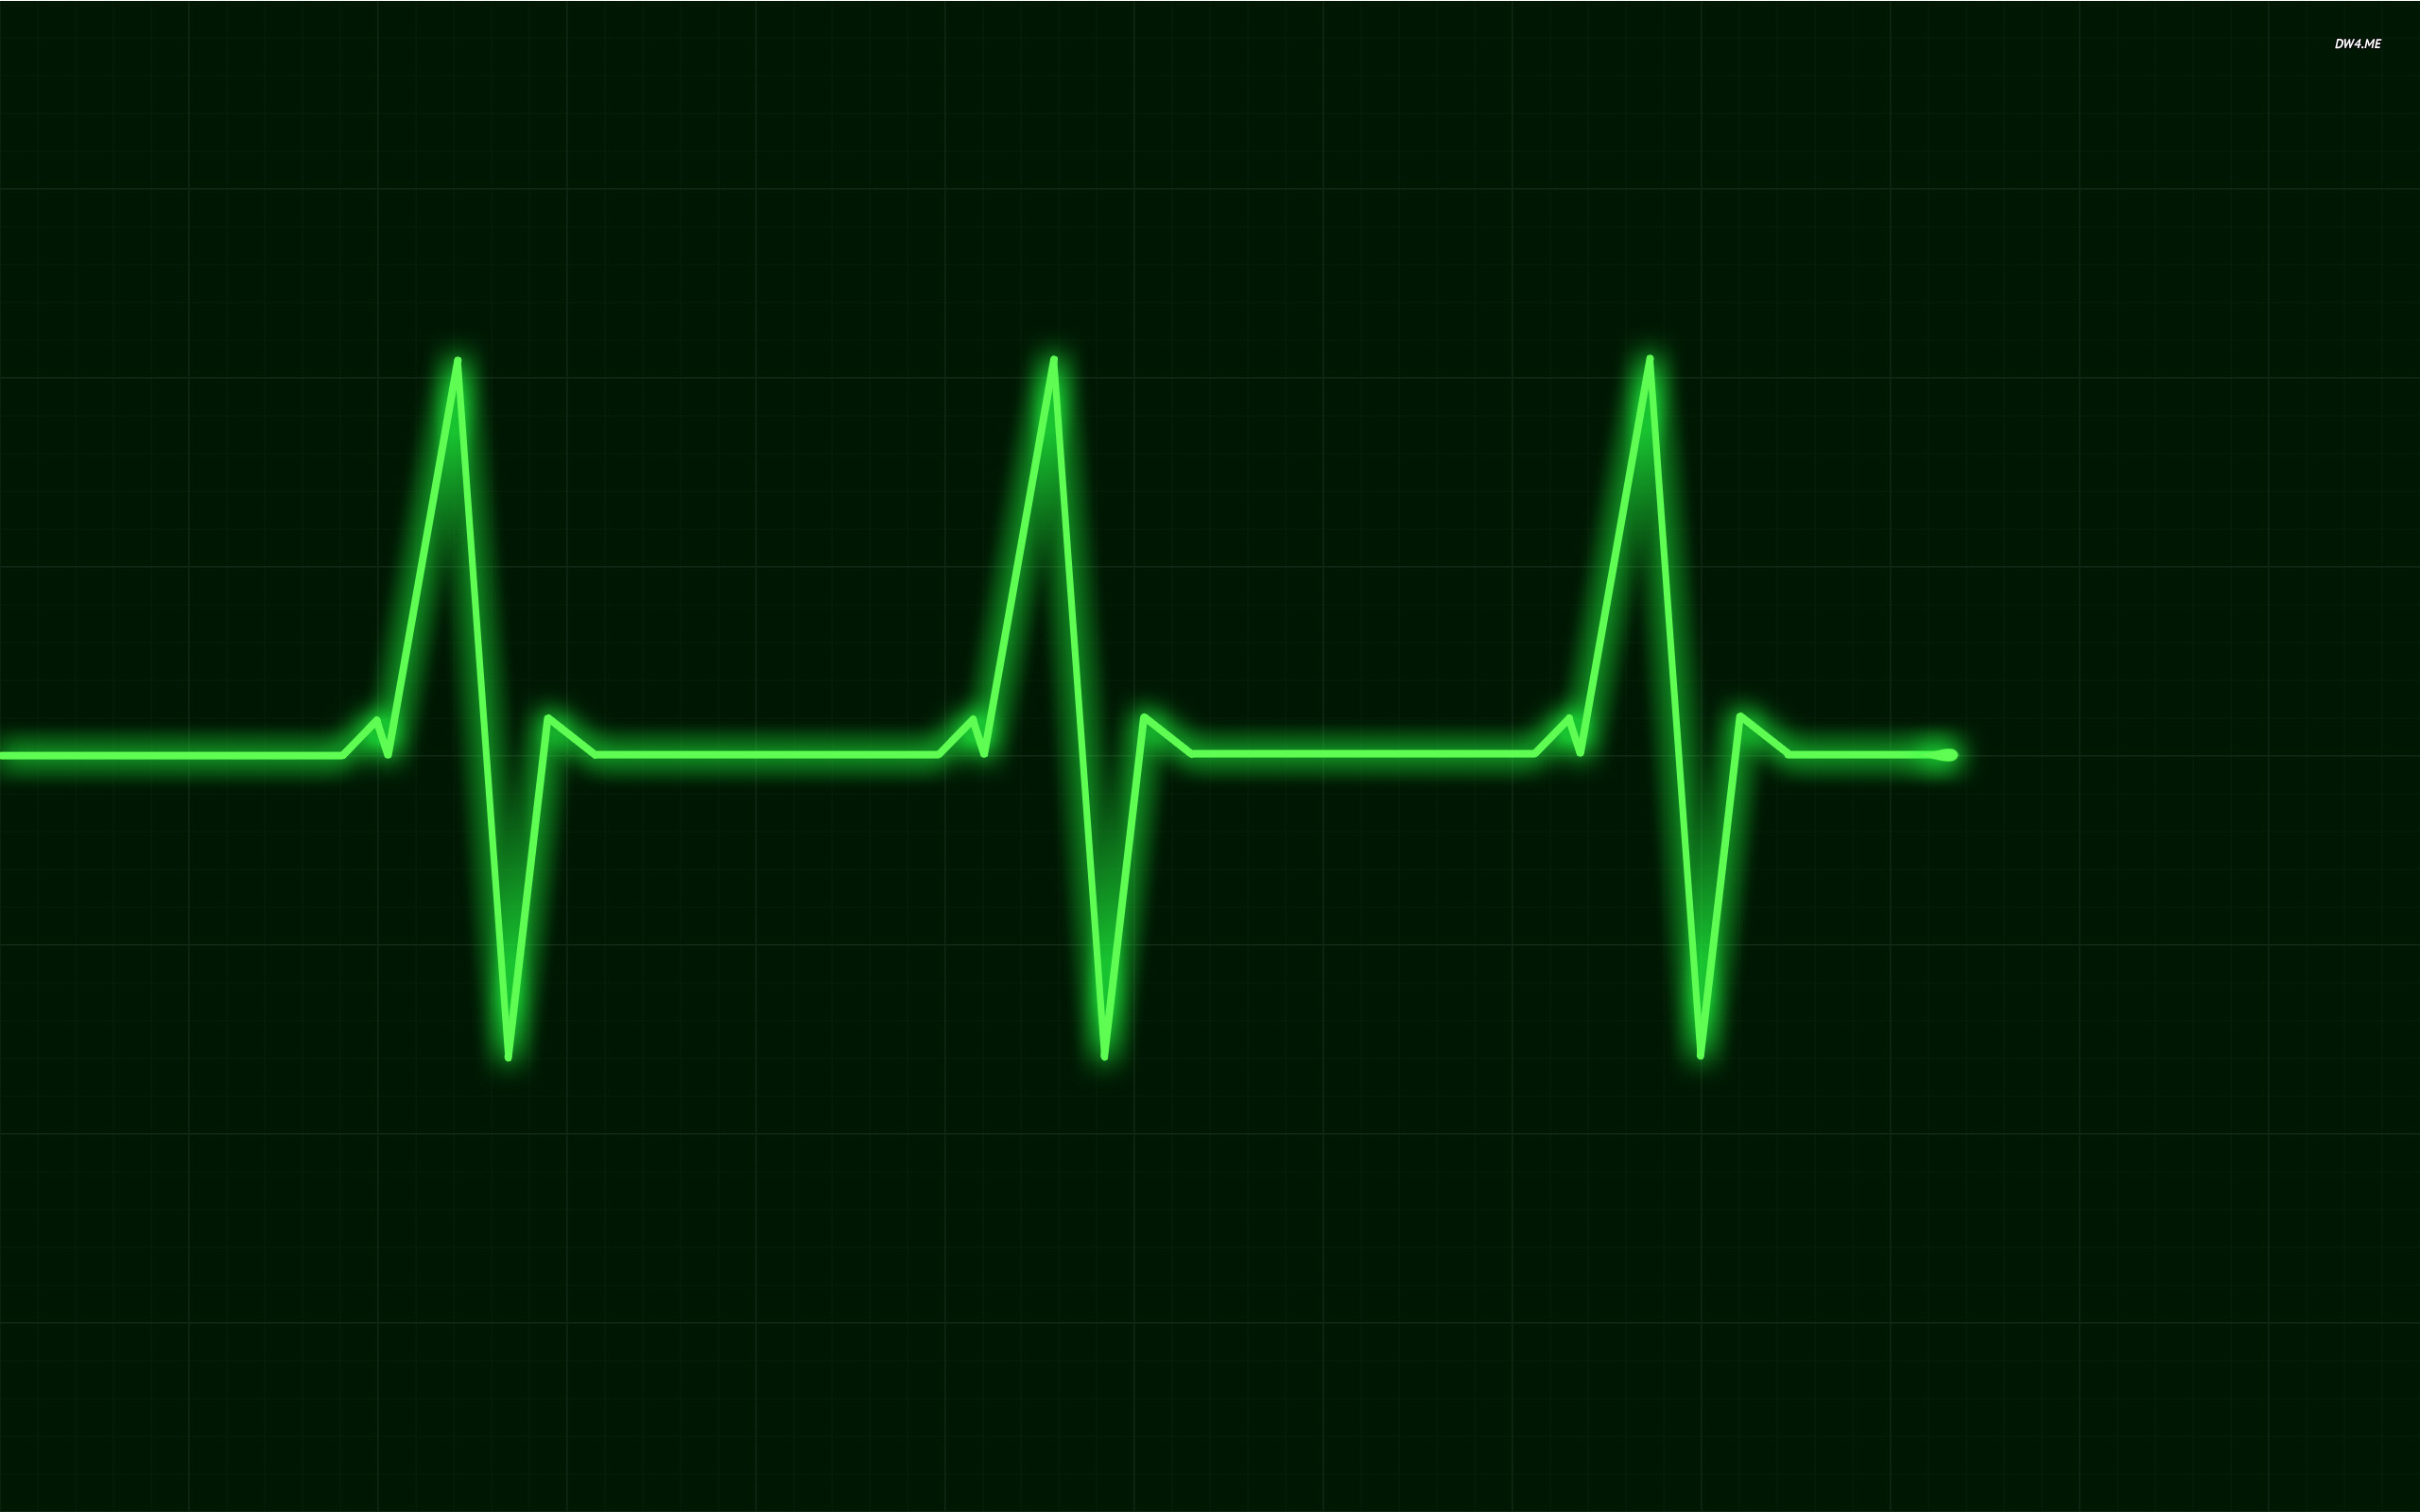 Heartbeat Line Art : Live heartbeat wallpapers pc bsnscb gallery